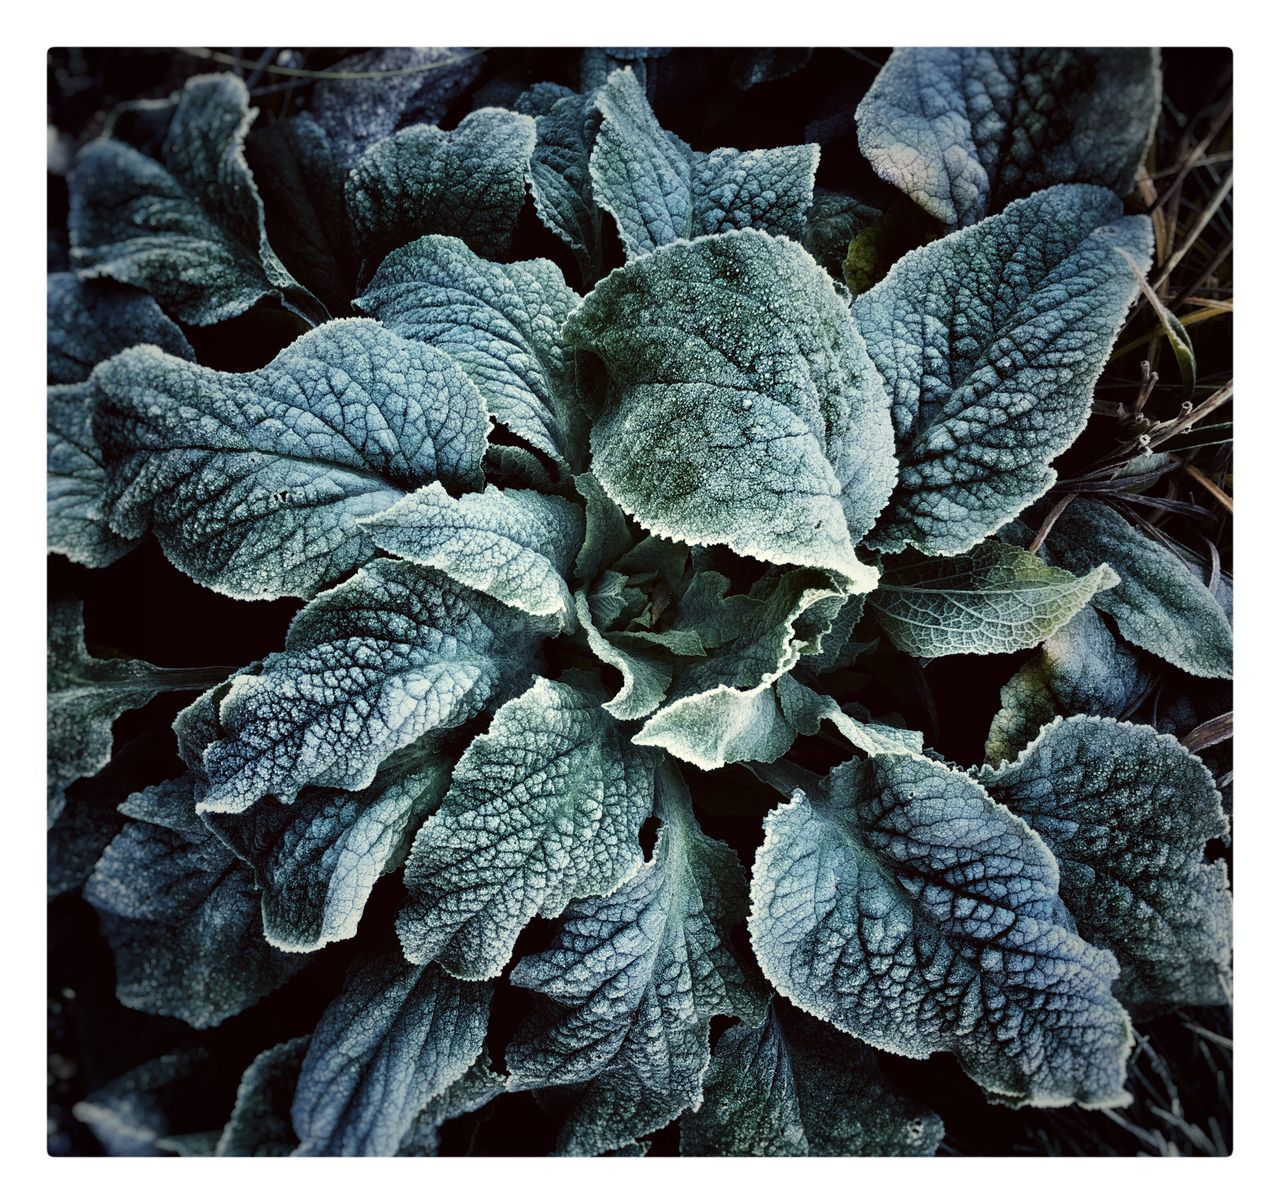 First frost upon the garden. Frost Frosty Mornings Plant Dork'd Nature Close-up Leaf Garden Photography Garden Foxglove